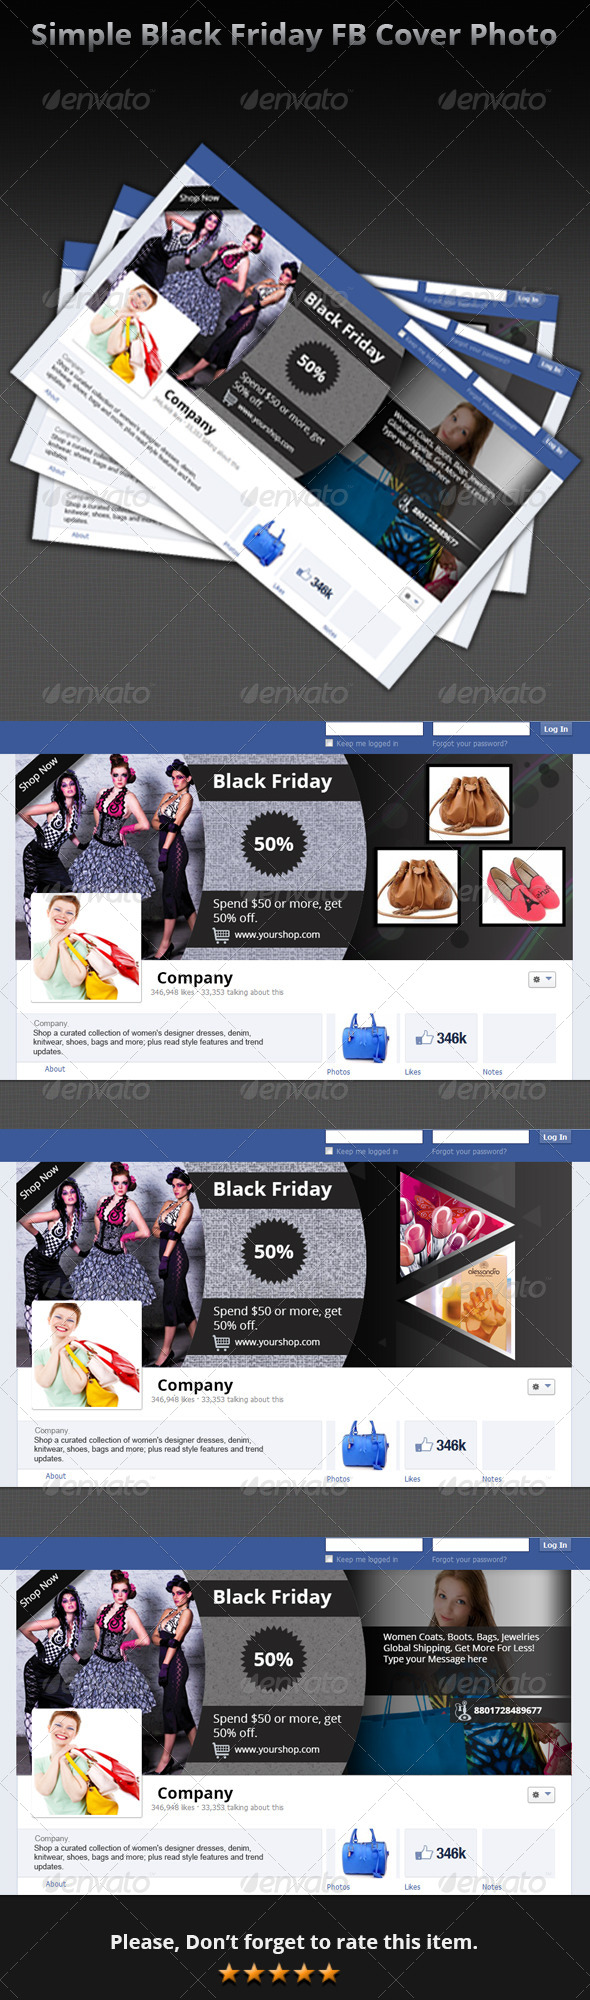 GraphicRiver Simple Black Friday FB Cover Photo 6135124